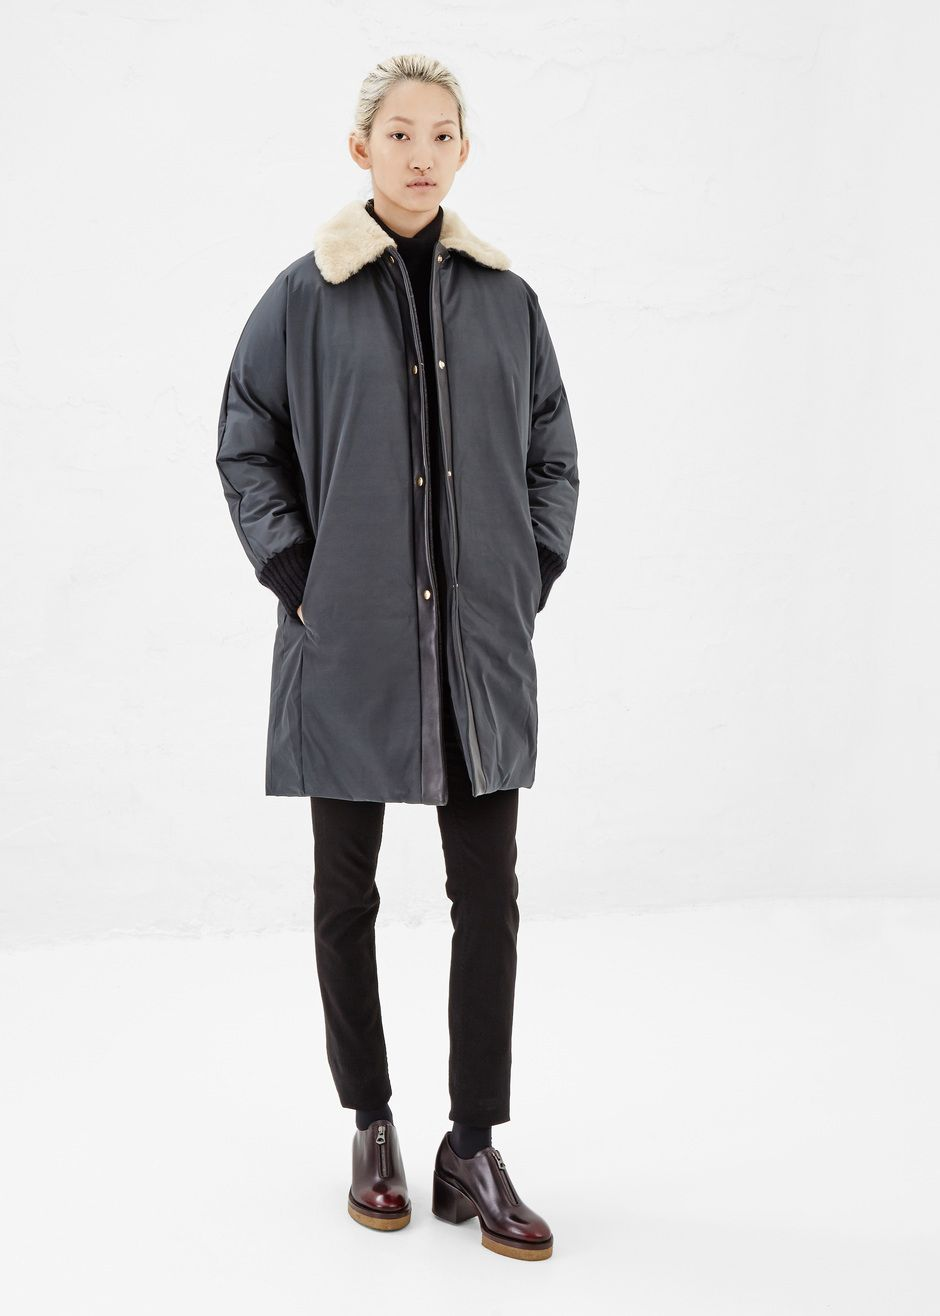 Marni Shearling Collar Coat (Teal) | Autumn//Winter | Pinterest ...